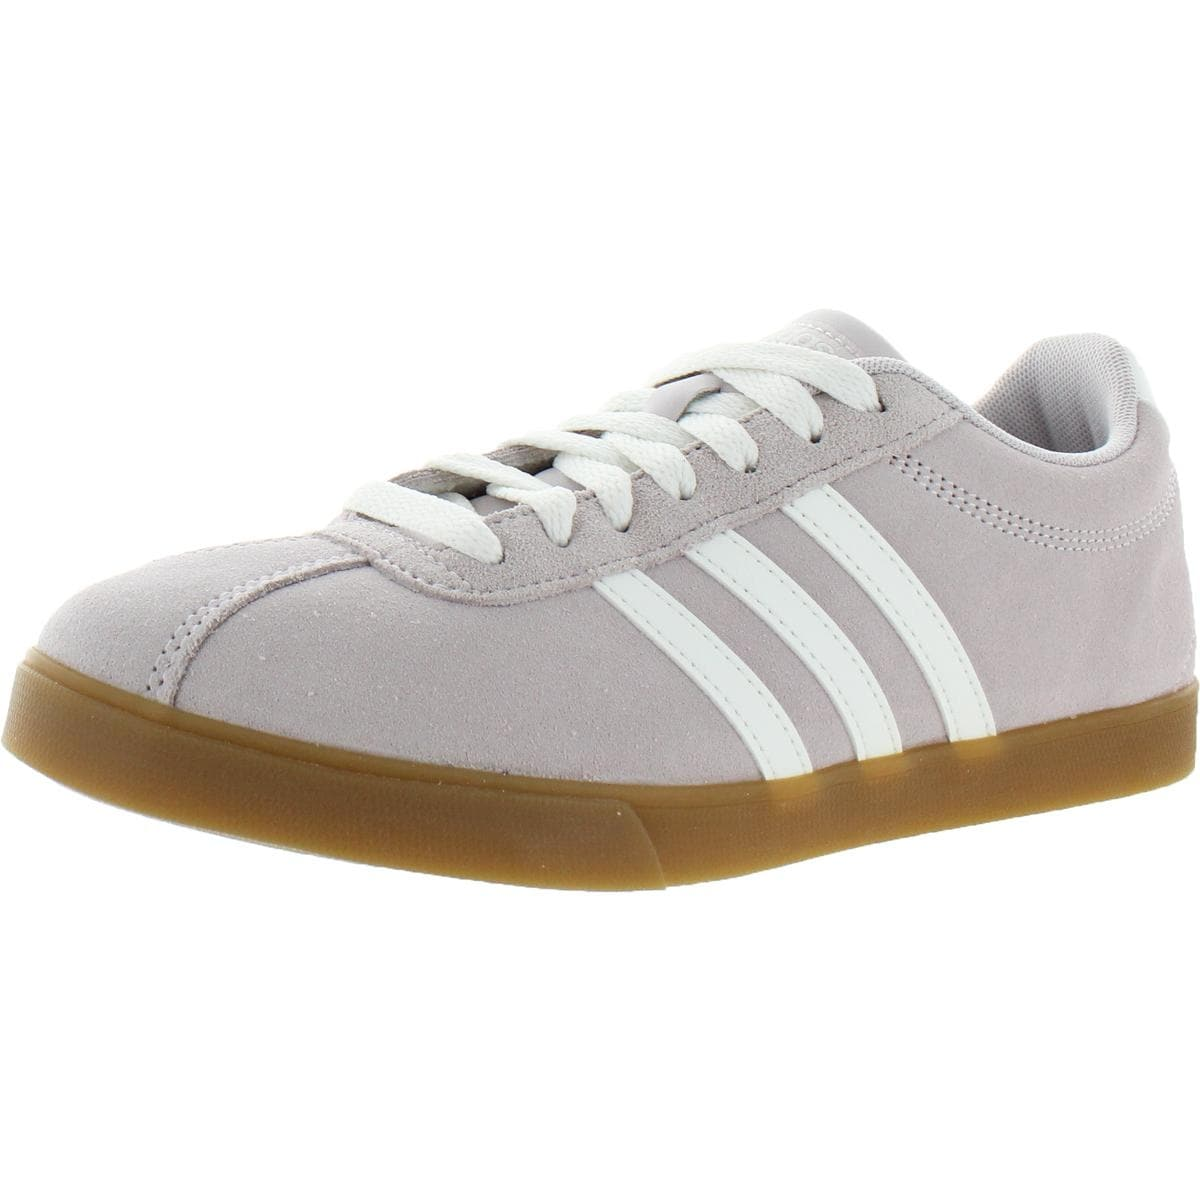 Adidas Womens Courtset Tennis Shoes Suede Ortholite Float